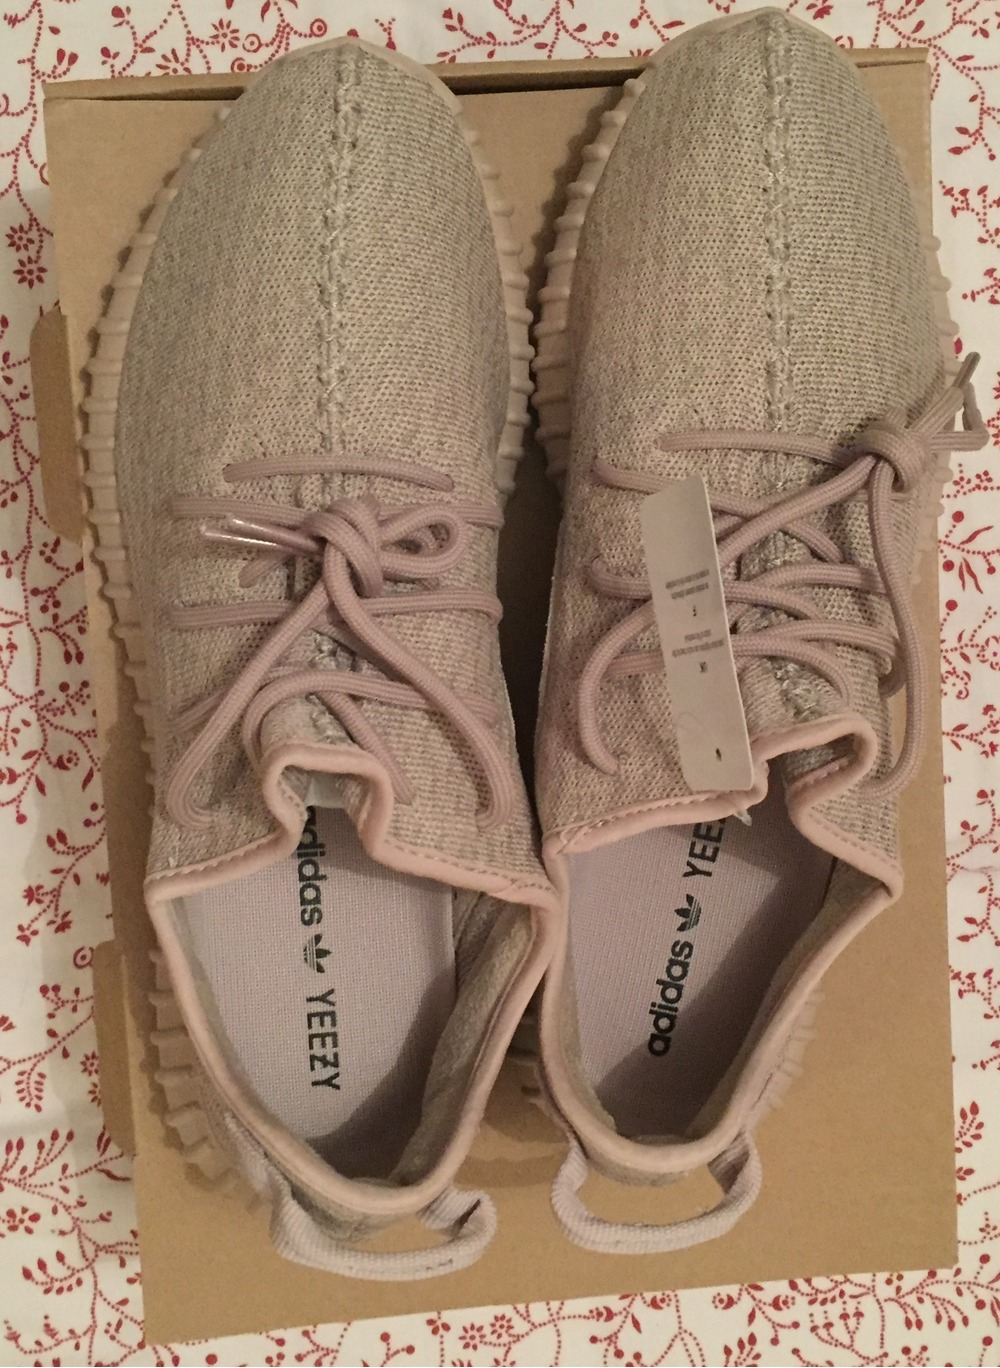 Adidas Yeezy 350 Boost Unisex Oxford Tan